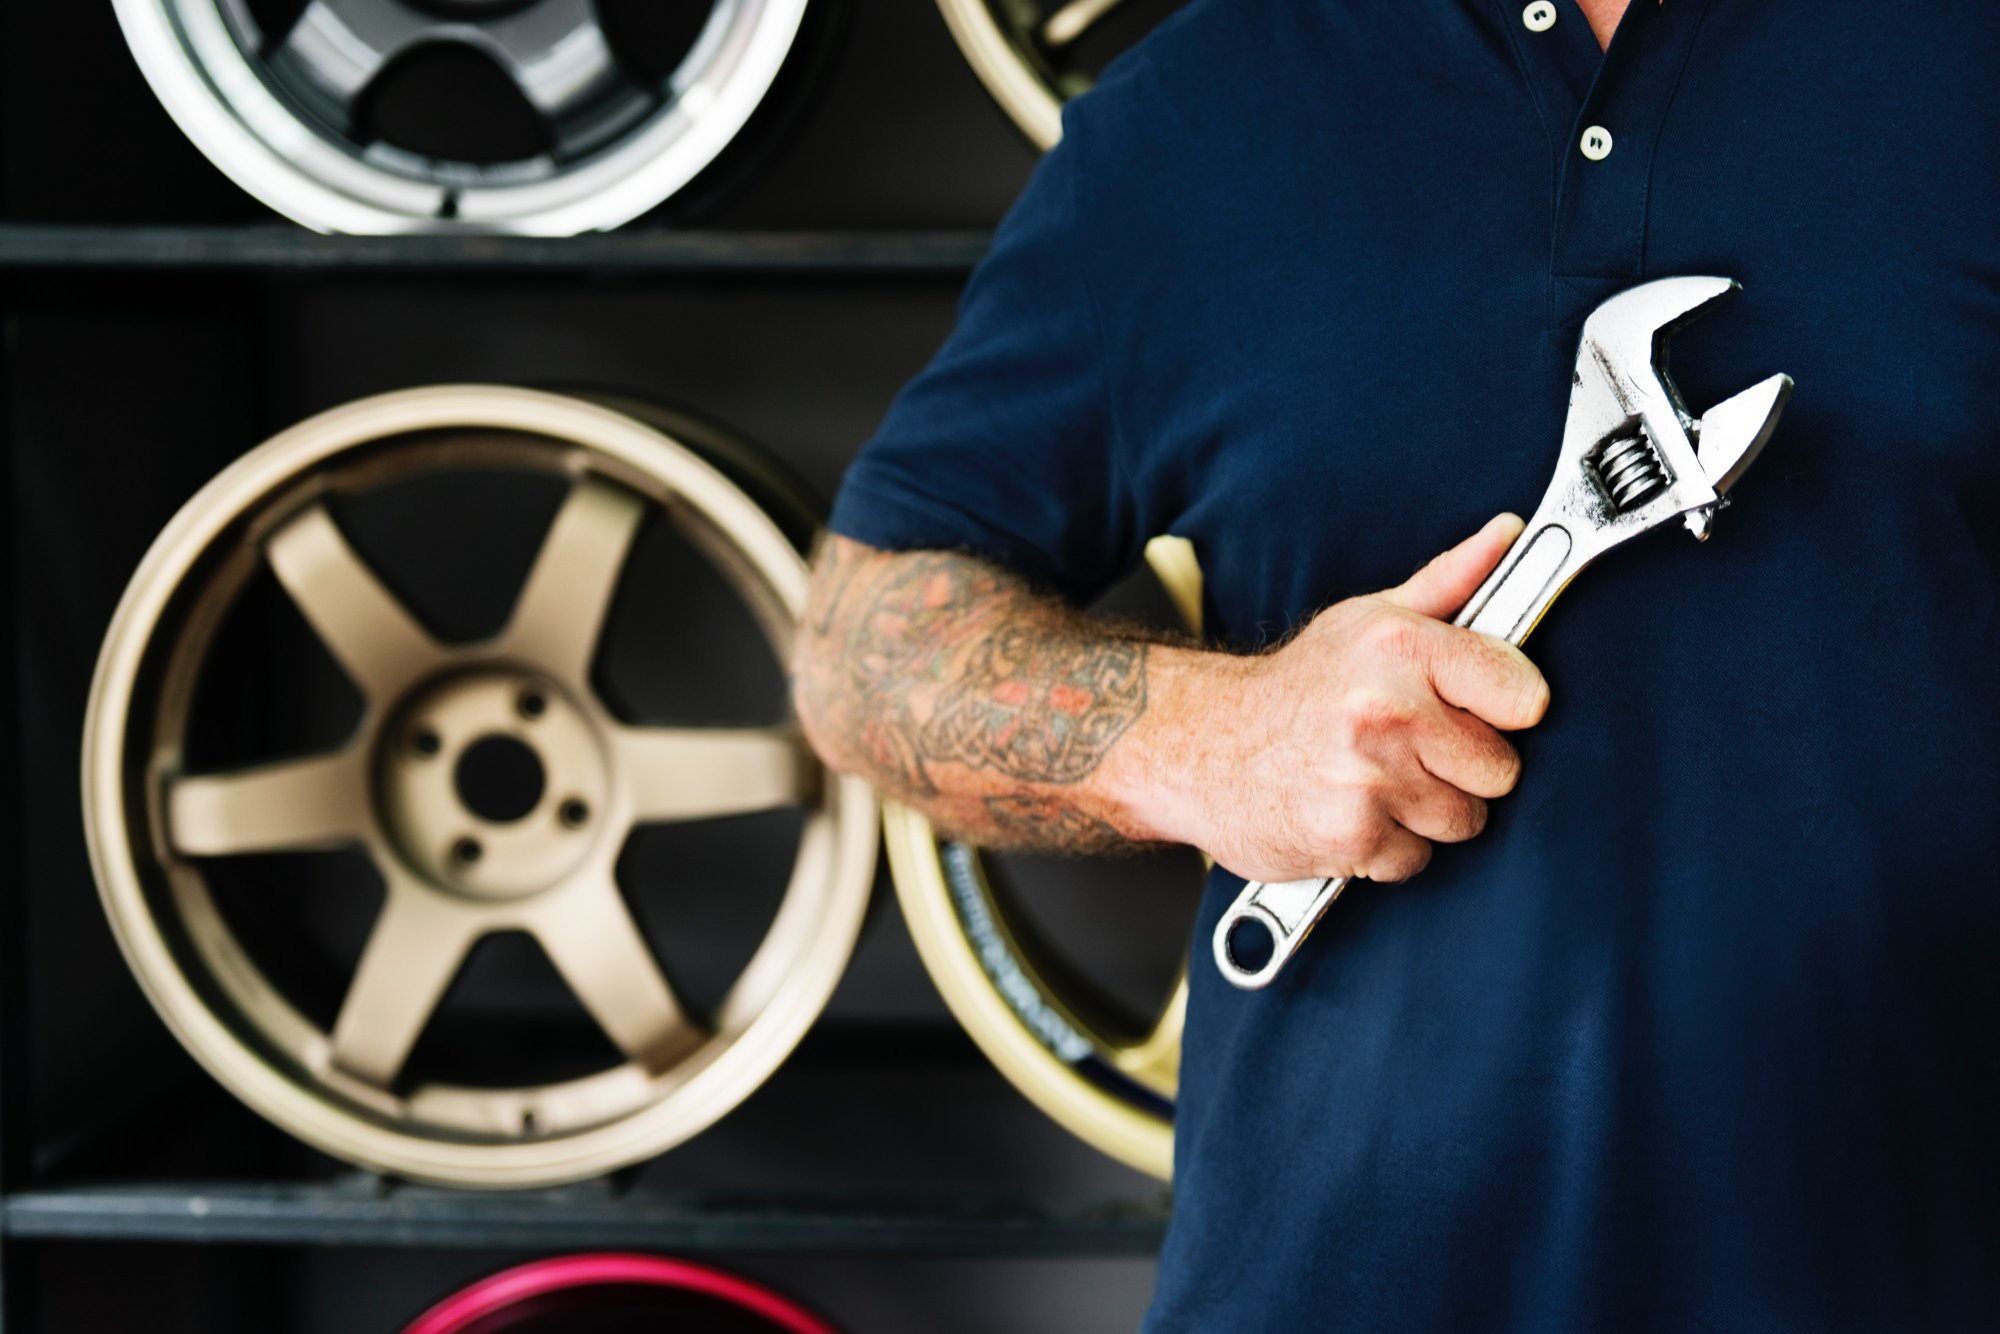 Auto Repair Centre Loughton - Car Repair & Servicing